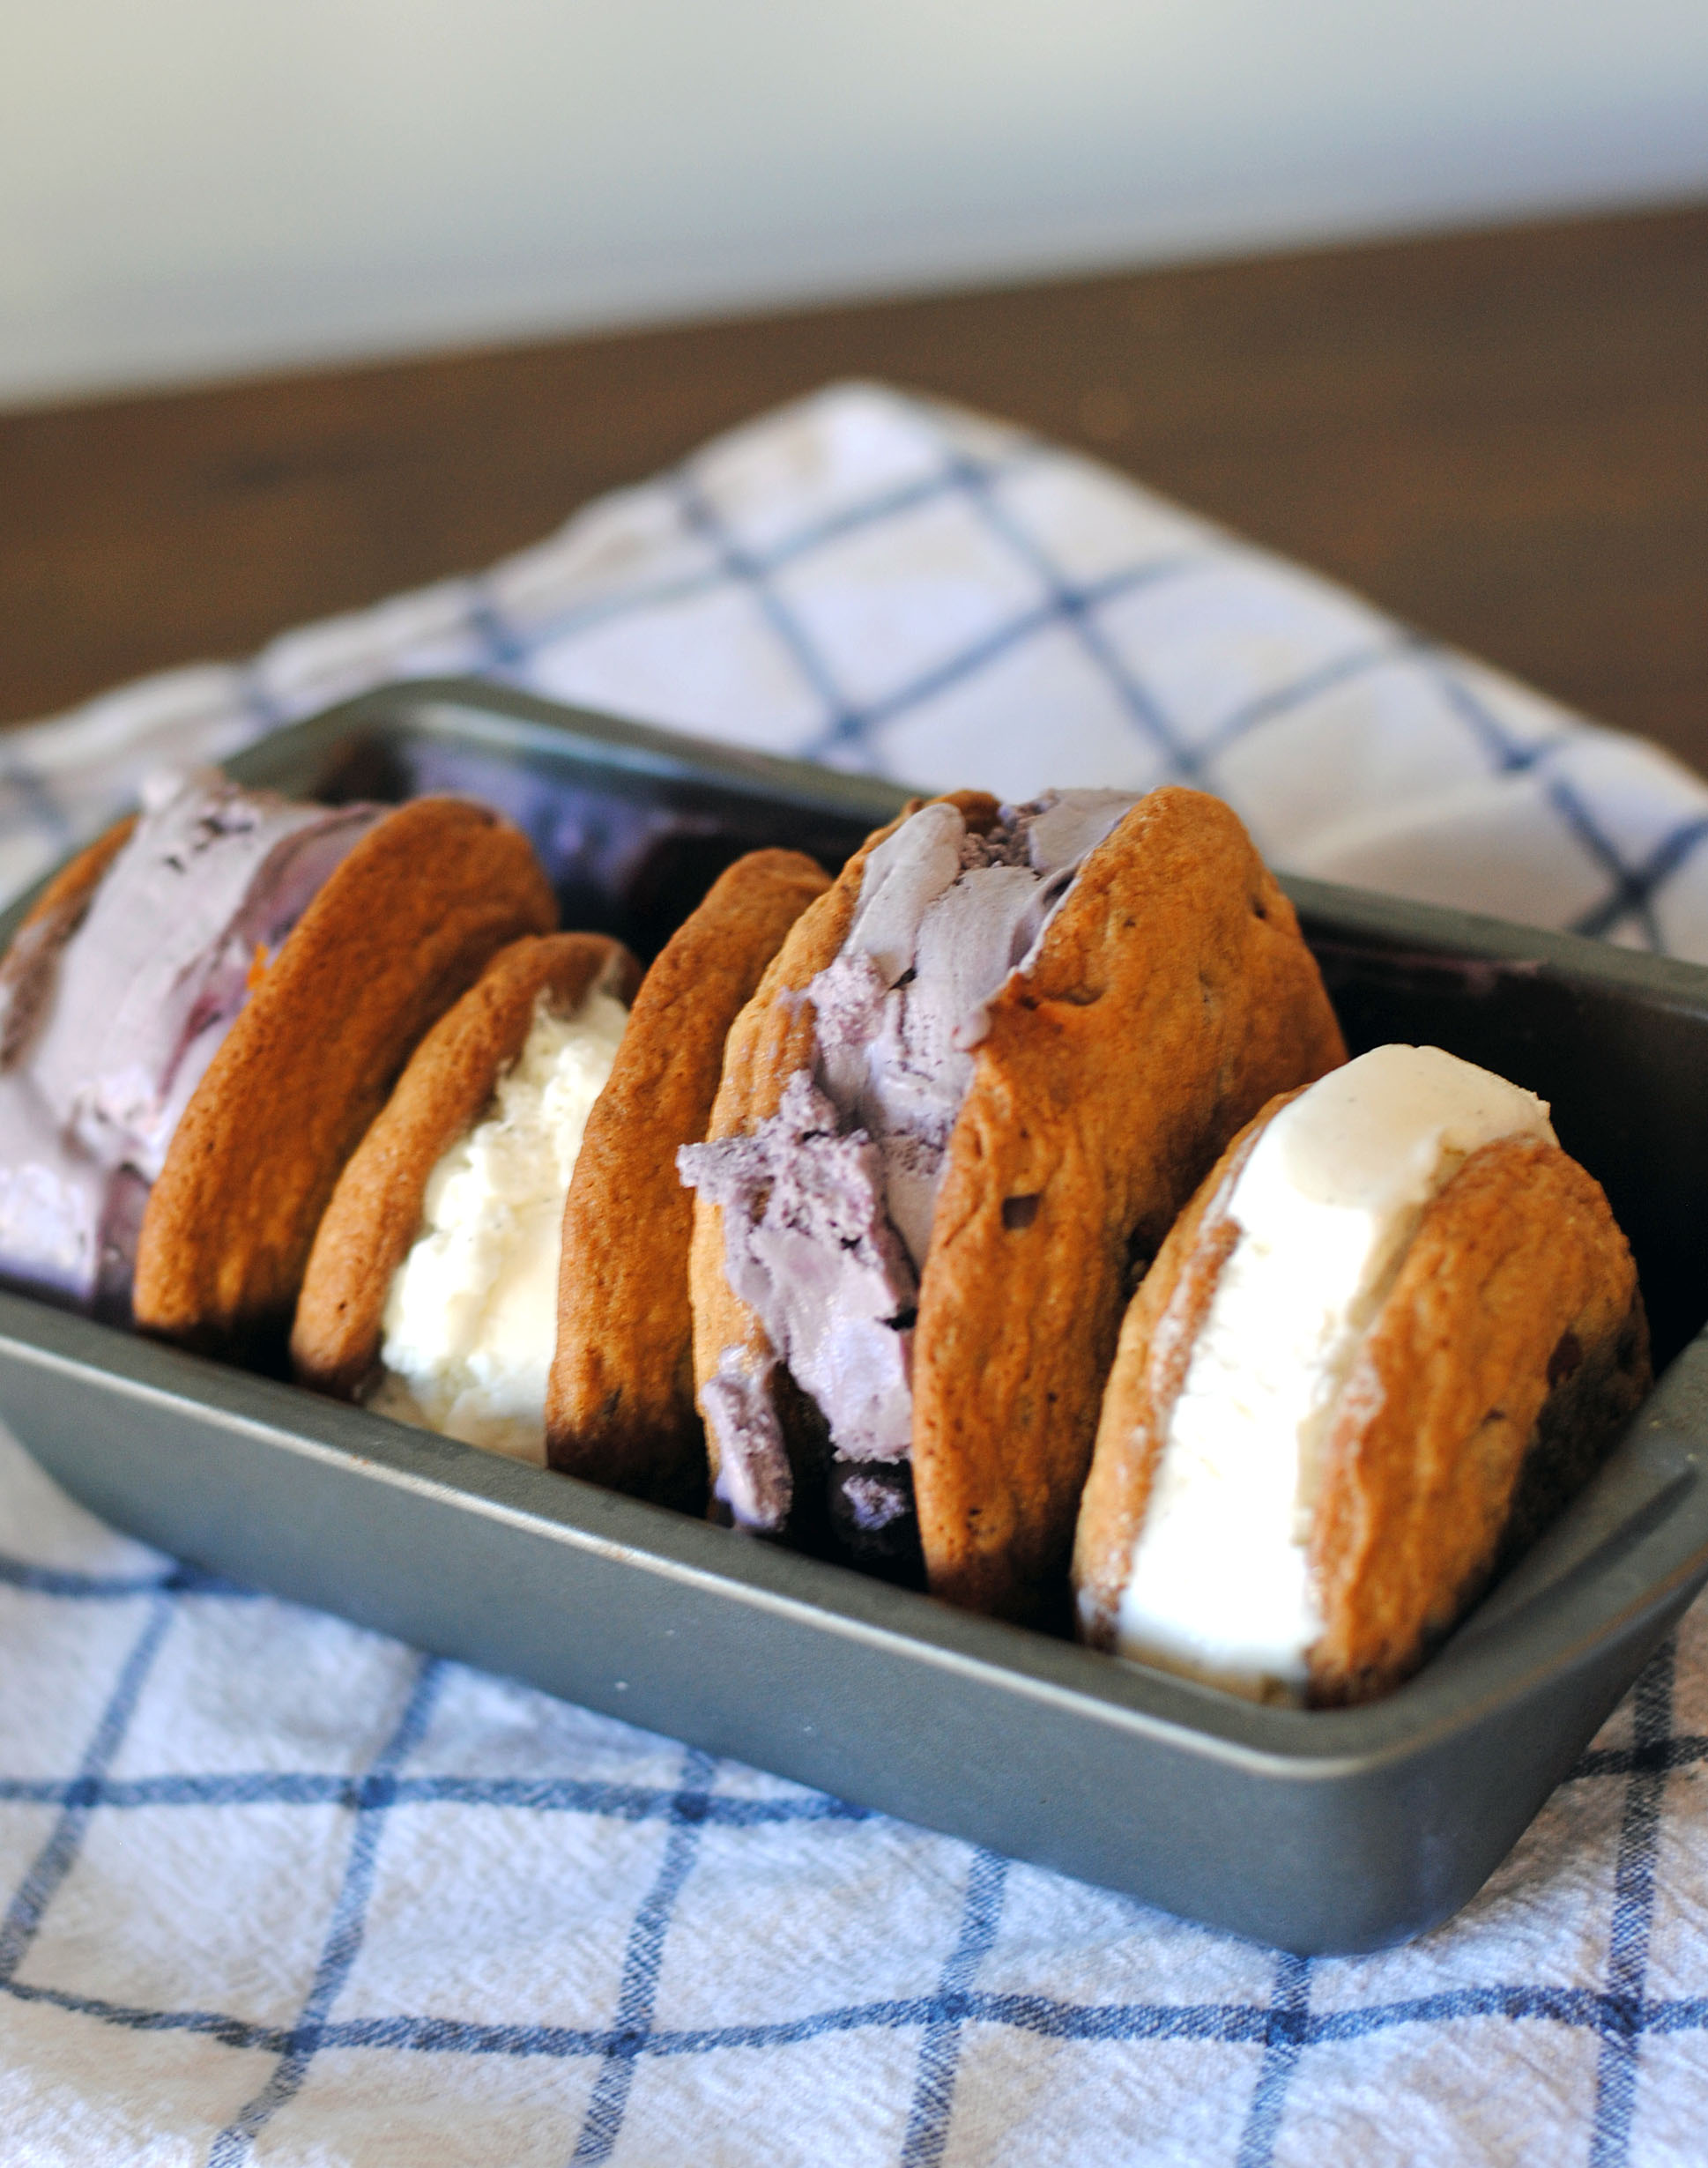 salted caramel ice cream sandwich 1